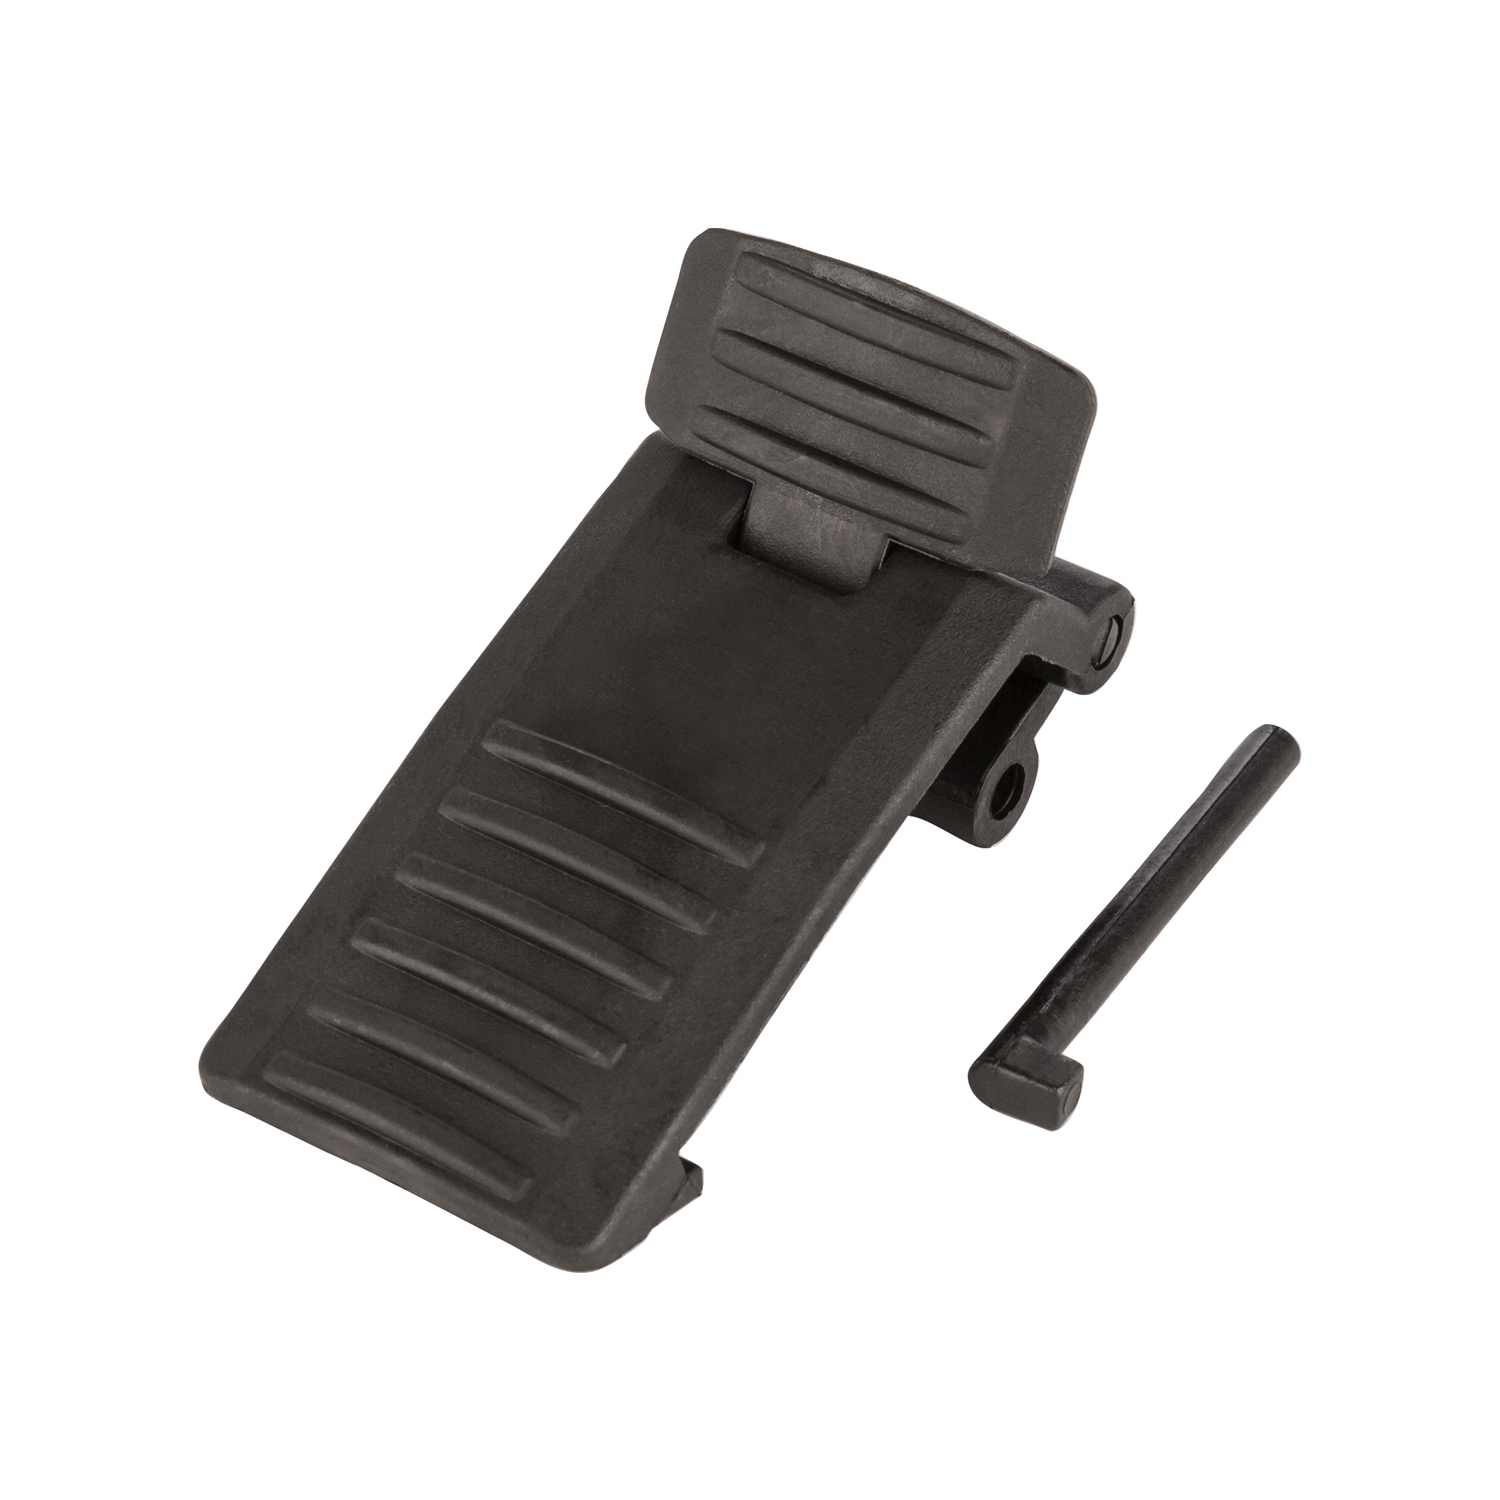 Kimpex TRUNK LATCH FOR CARGO BOX